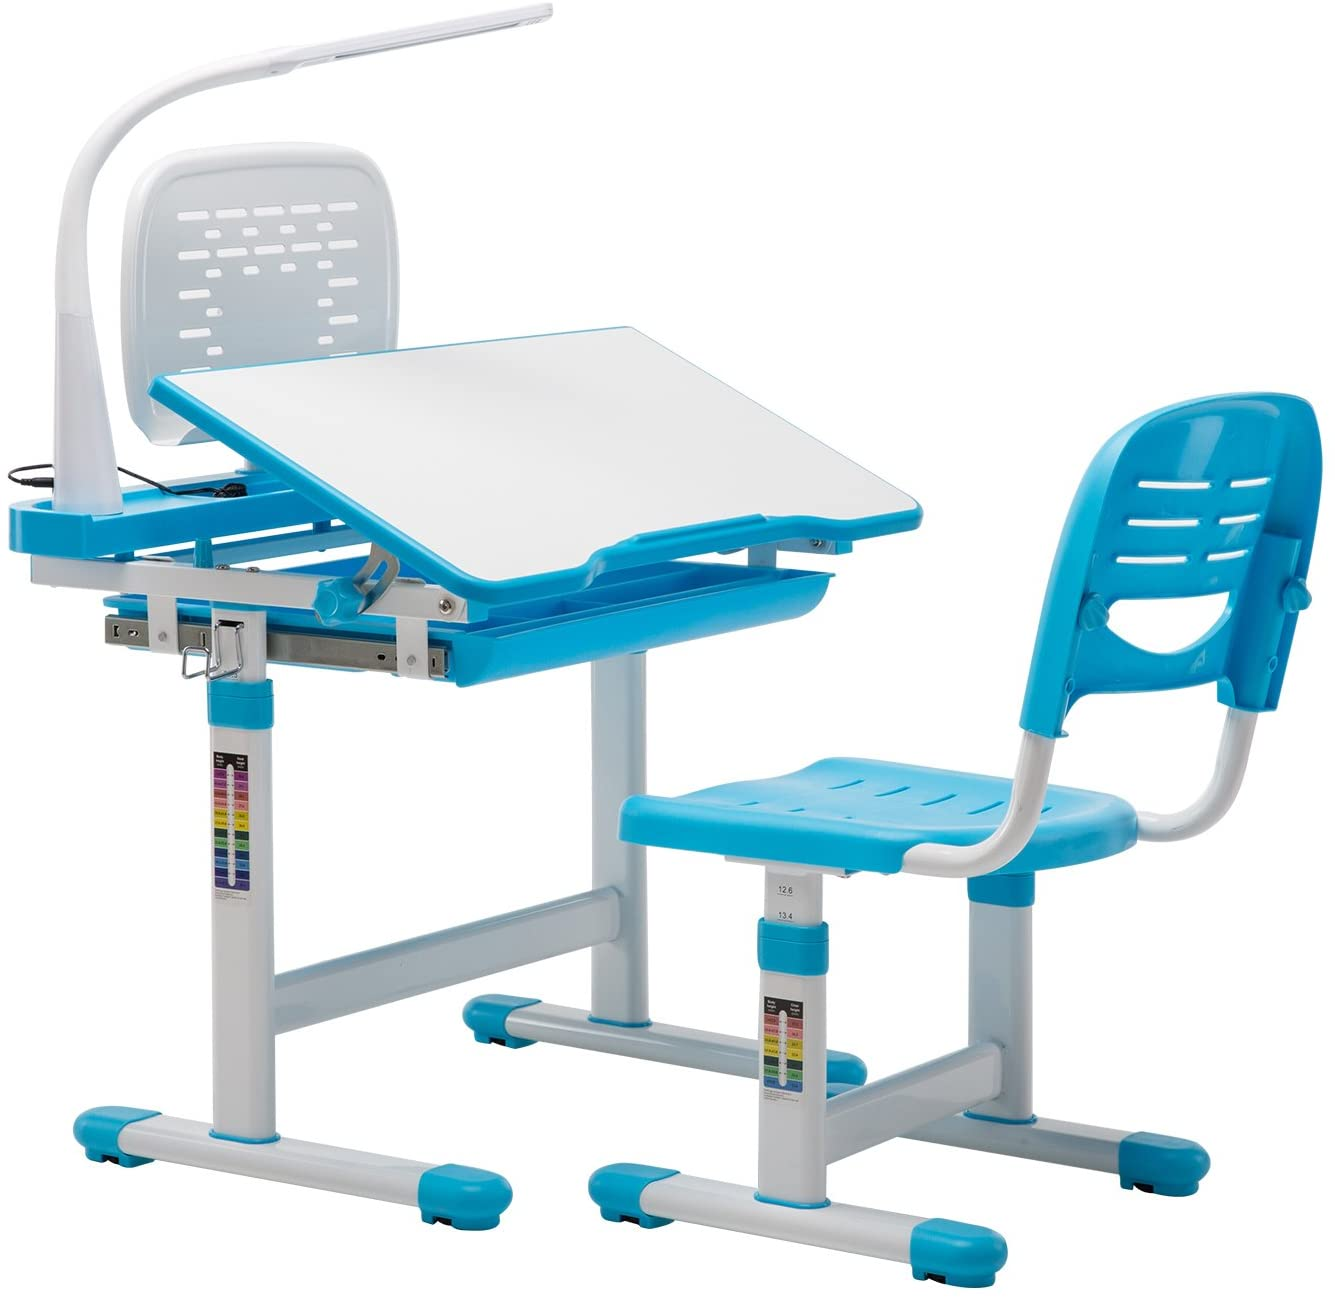 Mecor Kids Desk and Chair Set Height Adjustable,Children Student Sturdy Table w/Book Shelf/Sliding Drawer Storage and Three-Color Adjustable Bulb (Blue)